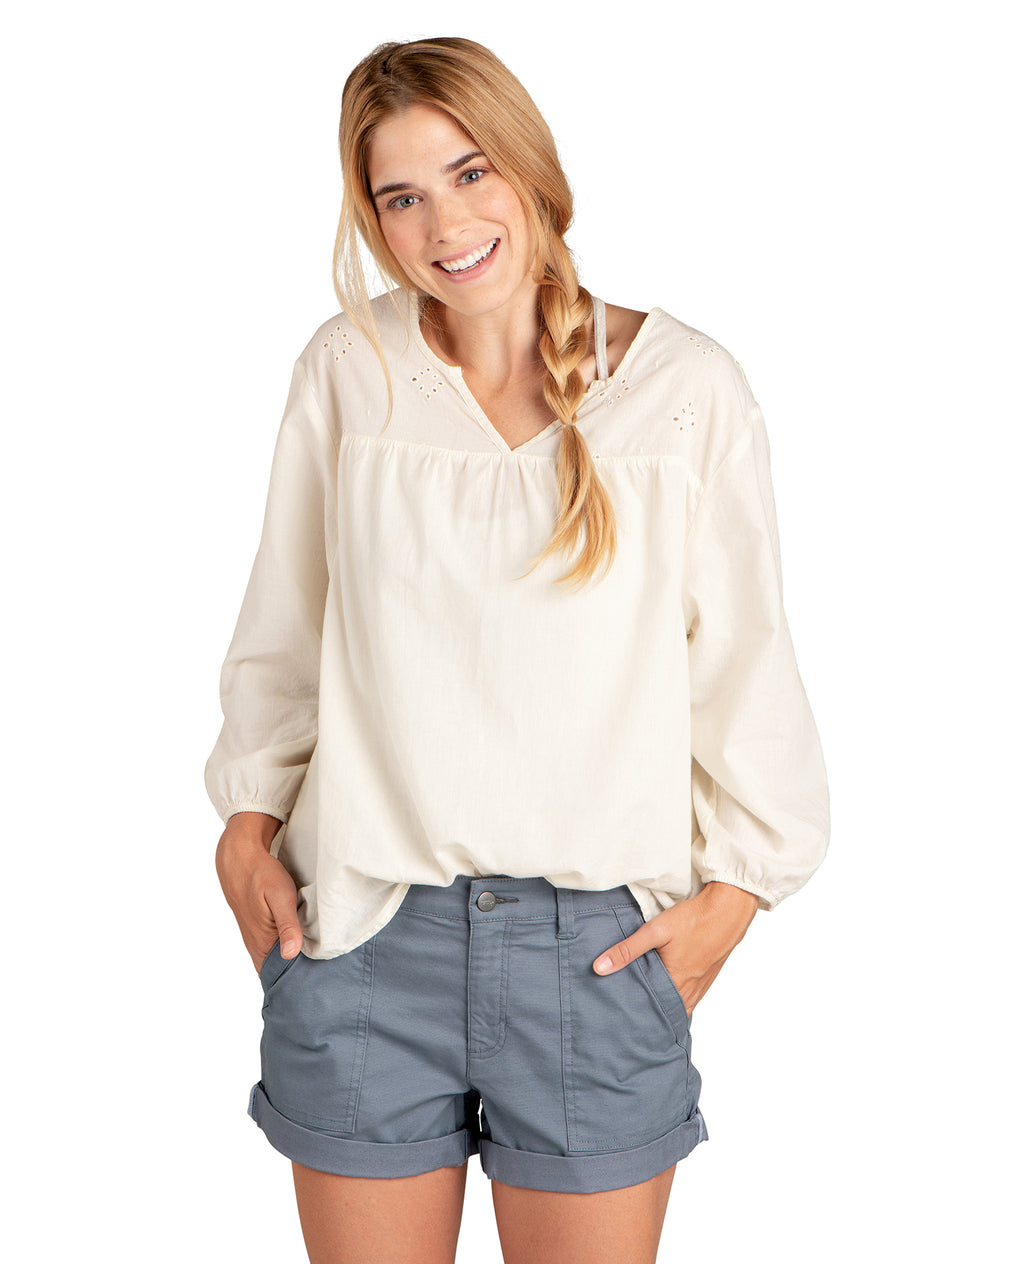 Light Beige V neck 3/4 sleeve shirt with eyelet cut out at the top.